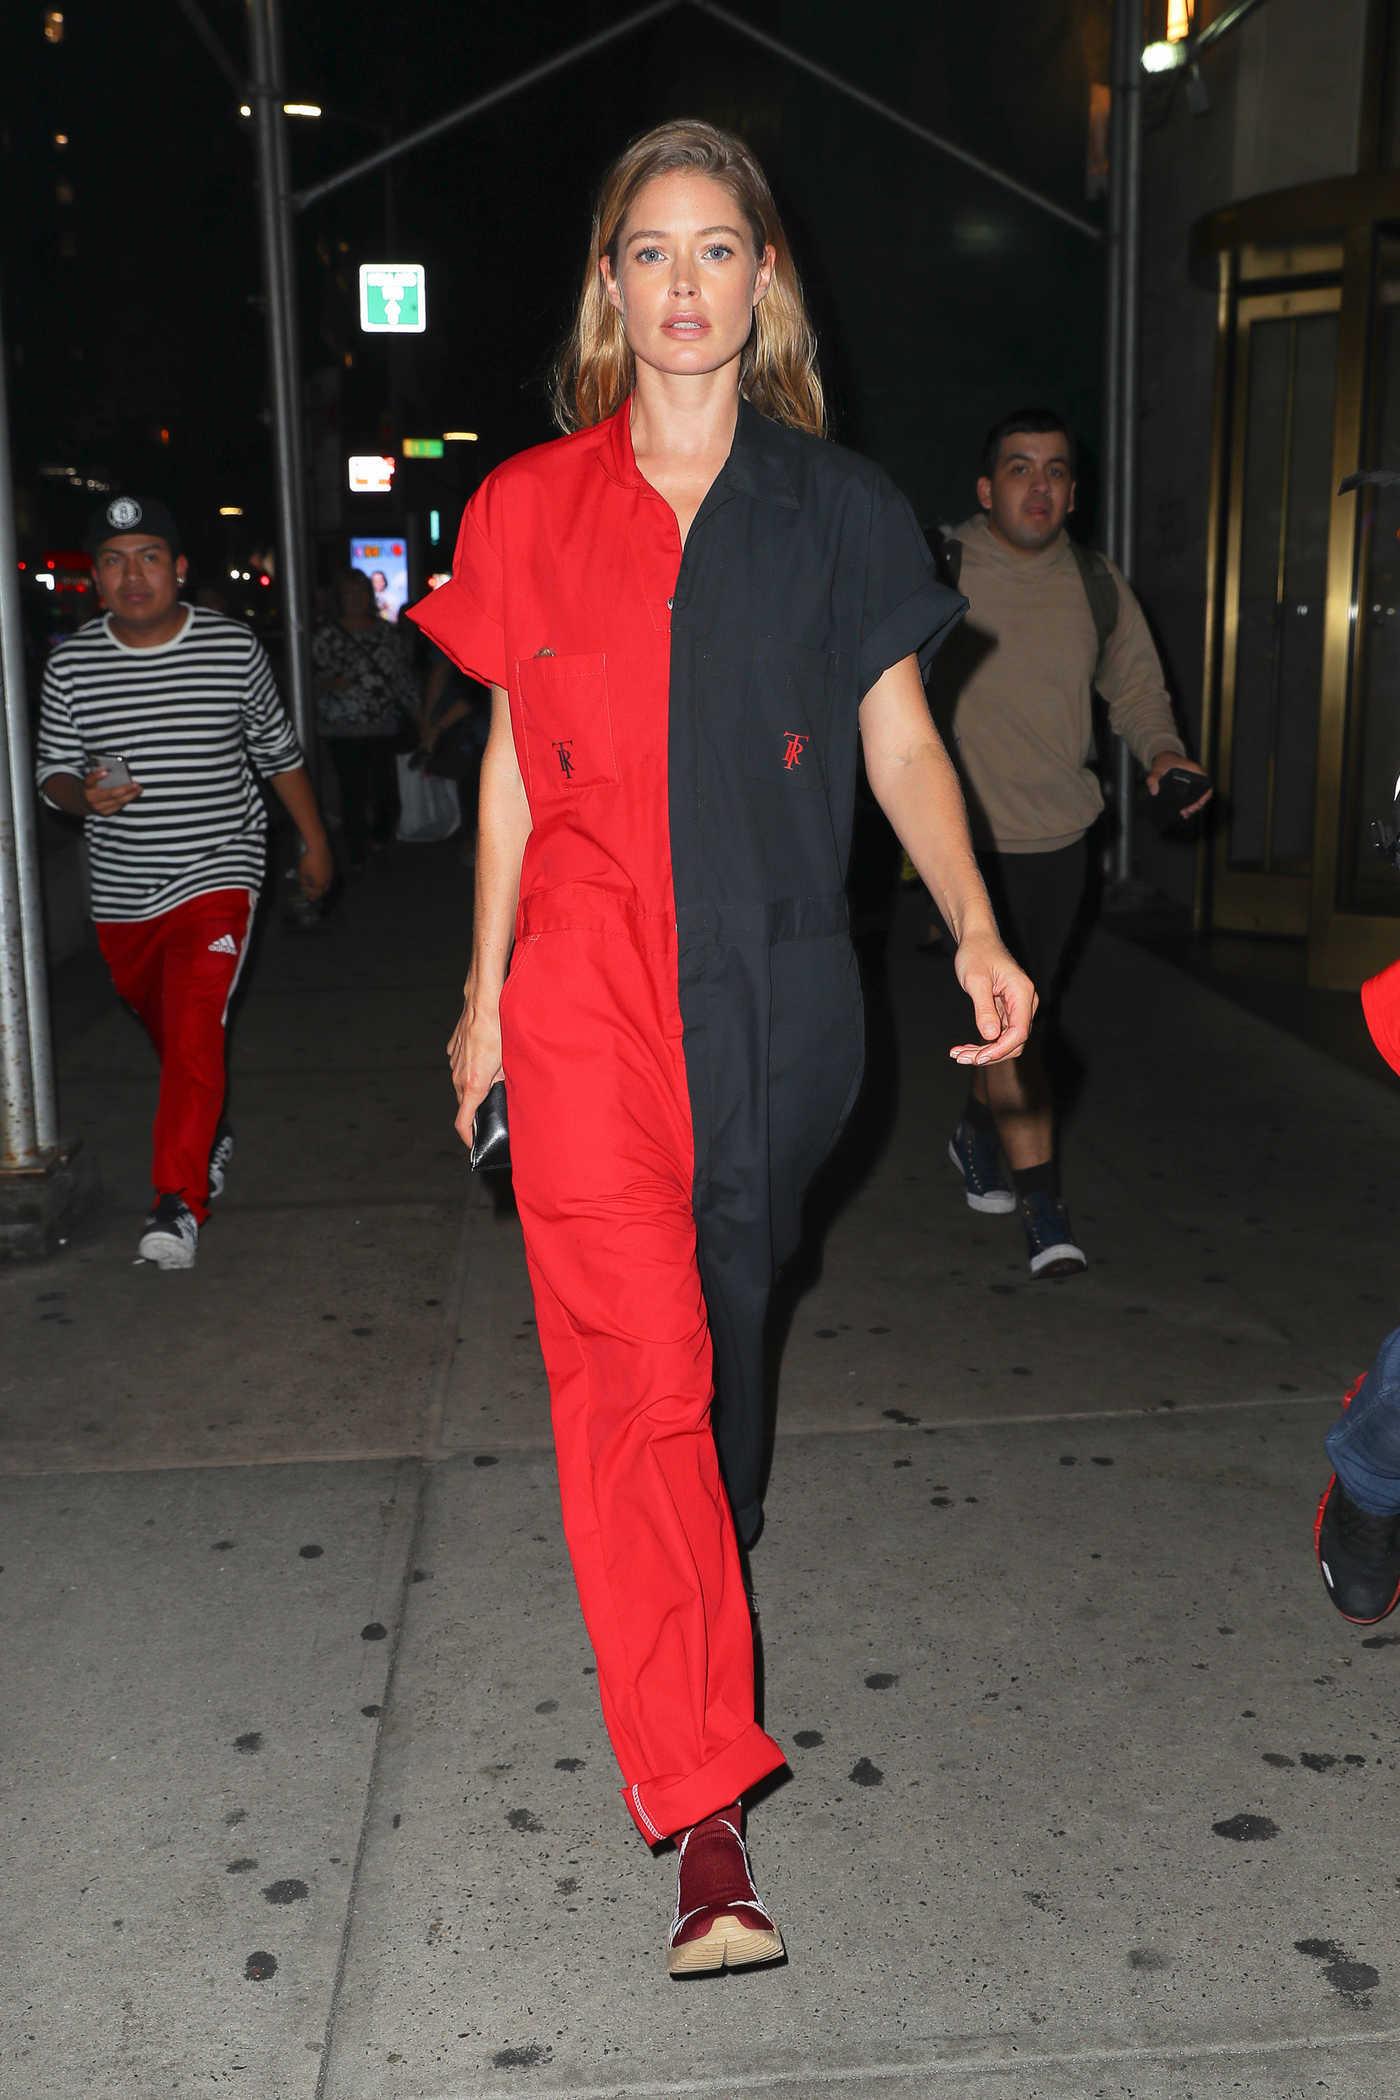 Doutzen Kroes in a Black and Red Overalls Was Seen Out in New York. 09/11/2018